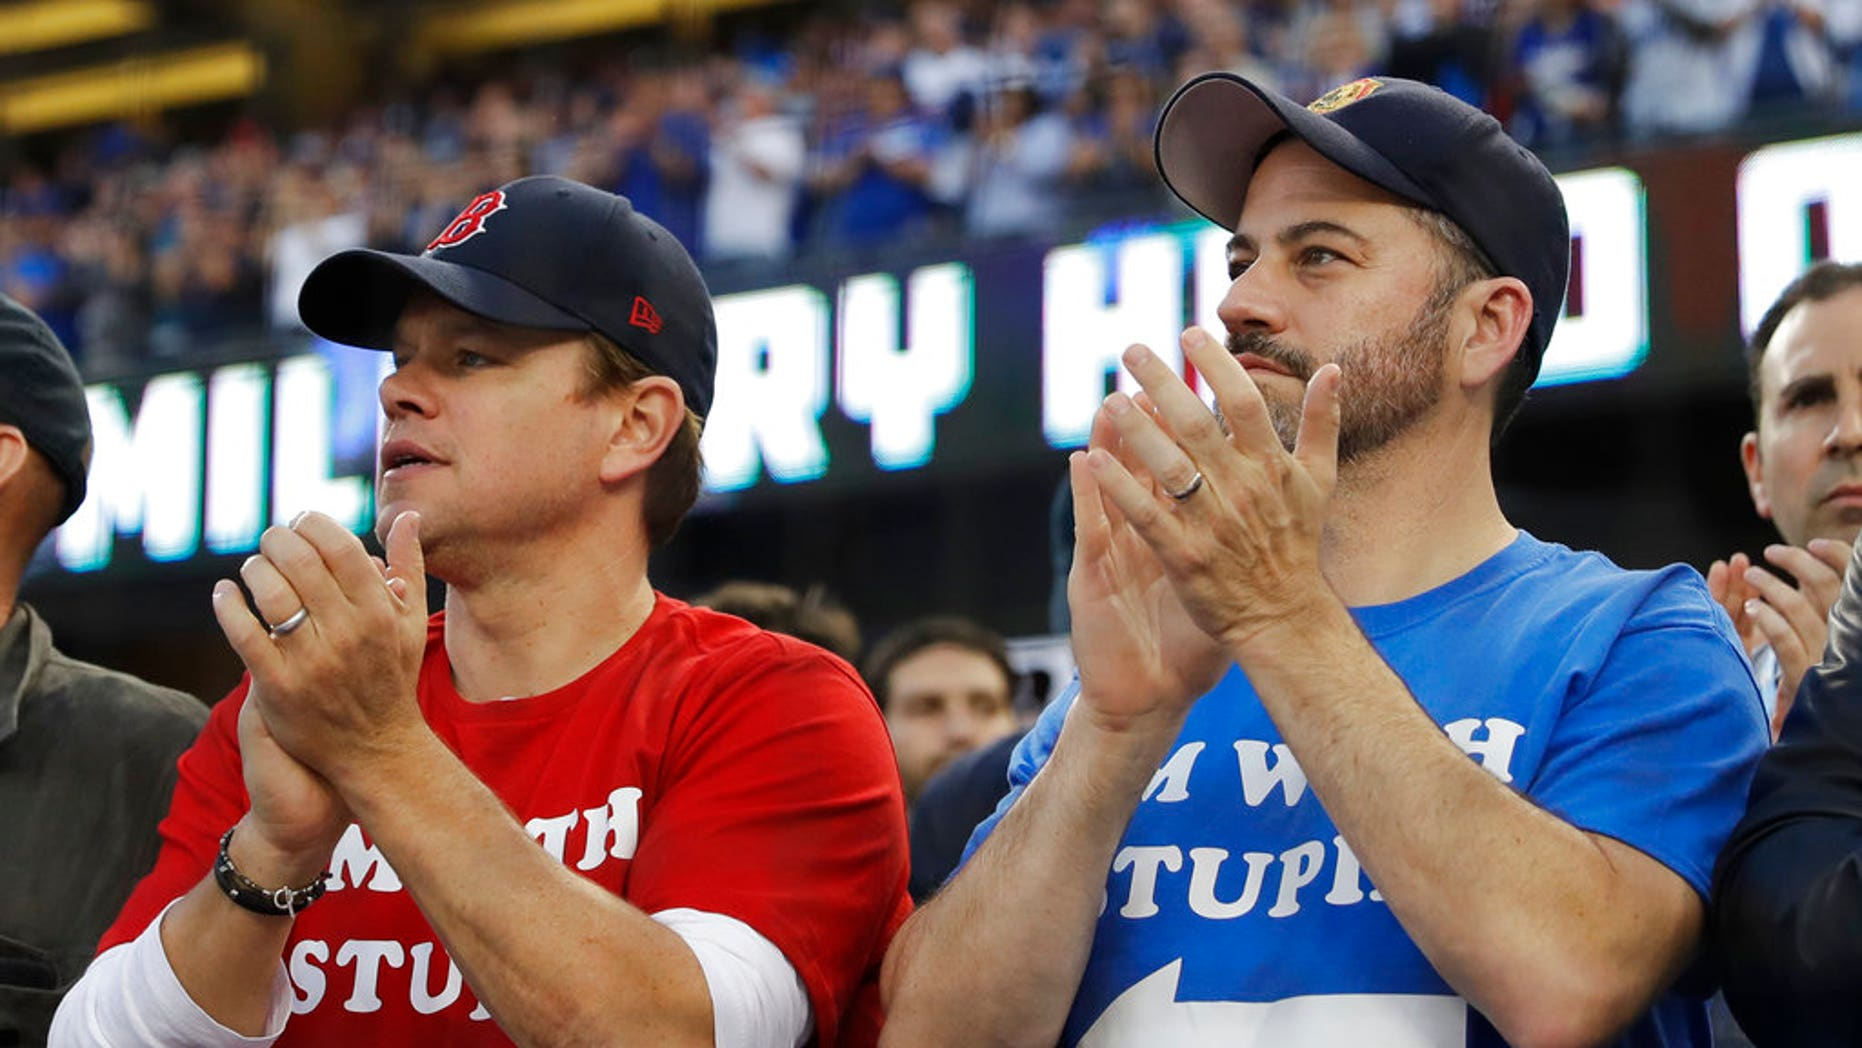 Matt Damon and Jimmy Kimmel watch Game 5 of the World Series baseball game between the Boston Red Sox and Los Angeles Dodgers on Sunday.